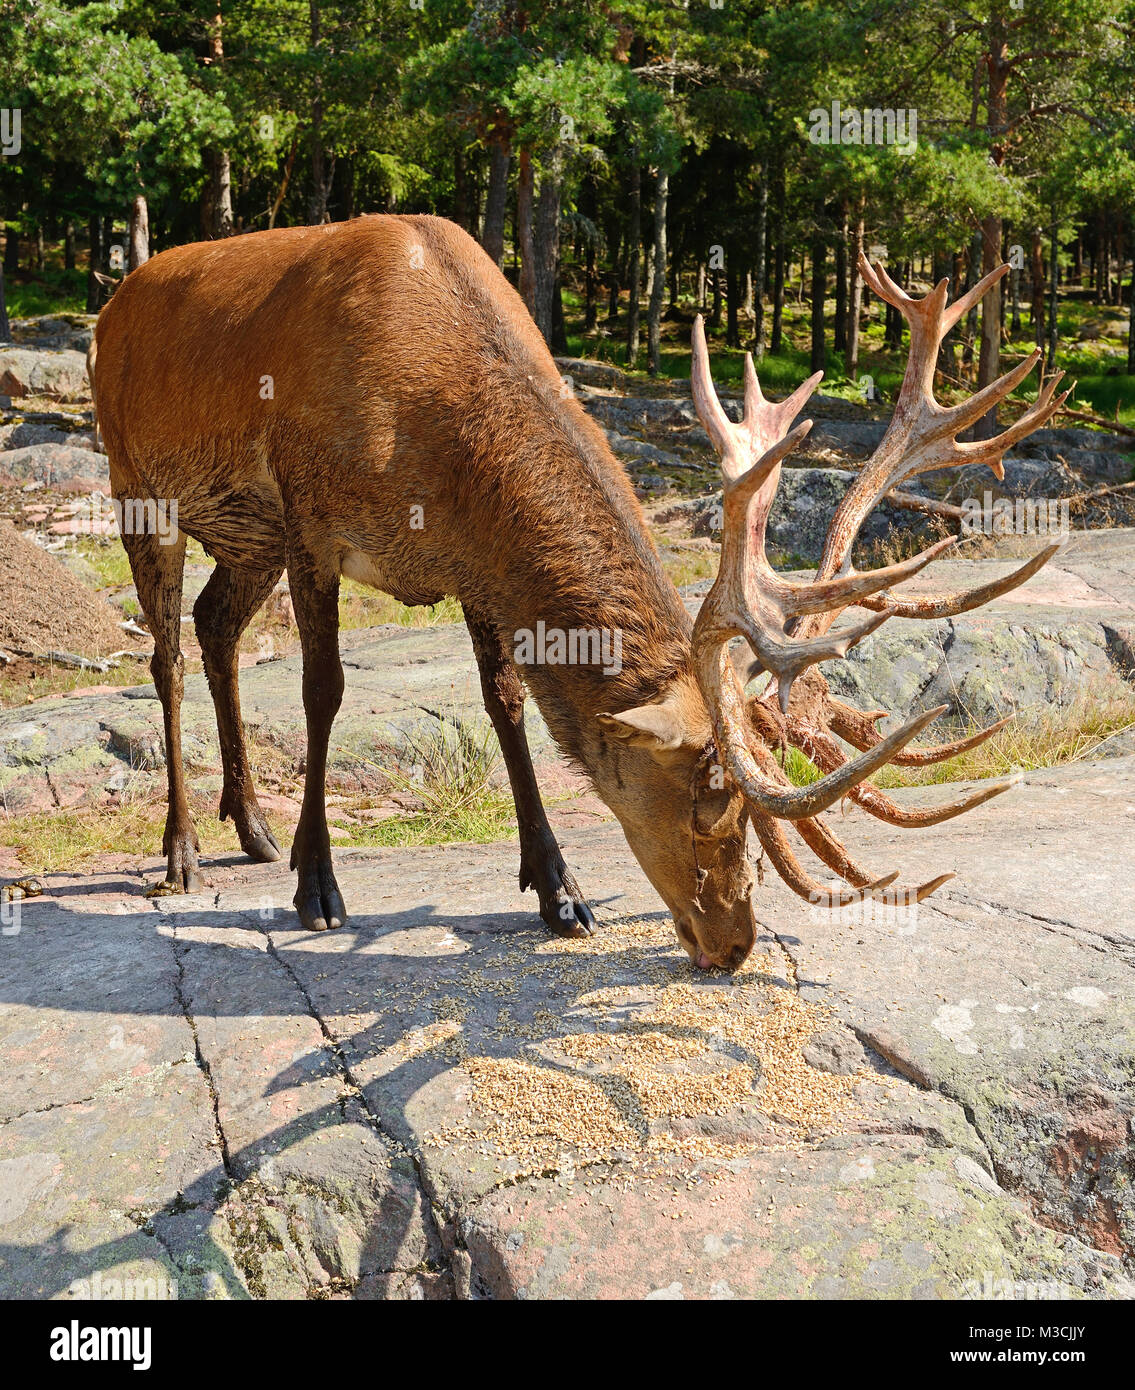 Apologise, mature male red deer can